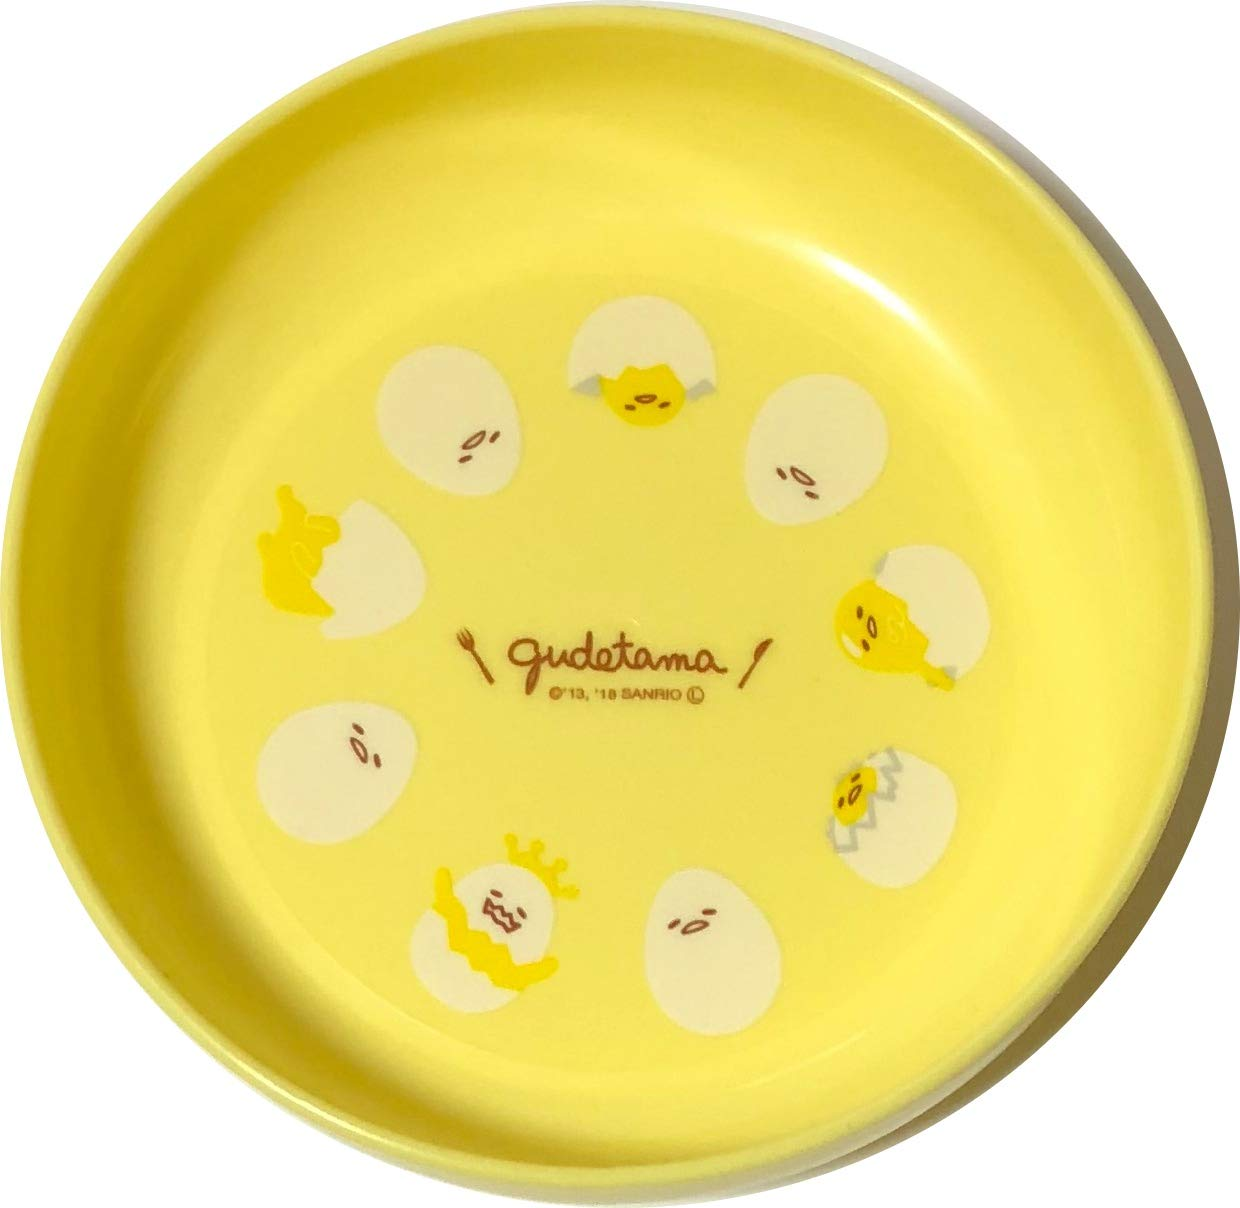 Sanrio Gudetama Mini Bowl Small Dish Polypropylene 13 /× 3 /× 13 cm Microwave OK Dinnerware Saucers Kitchen Cute